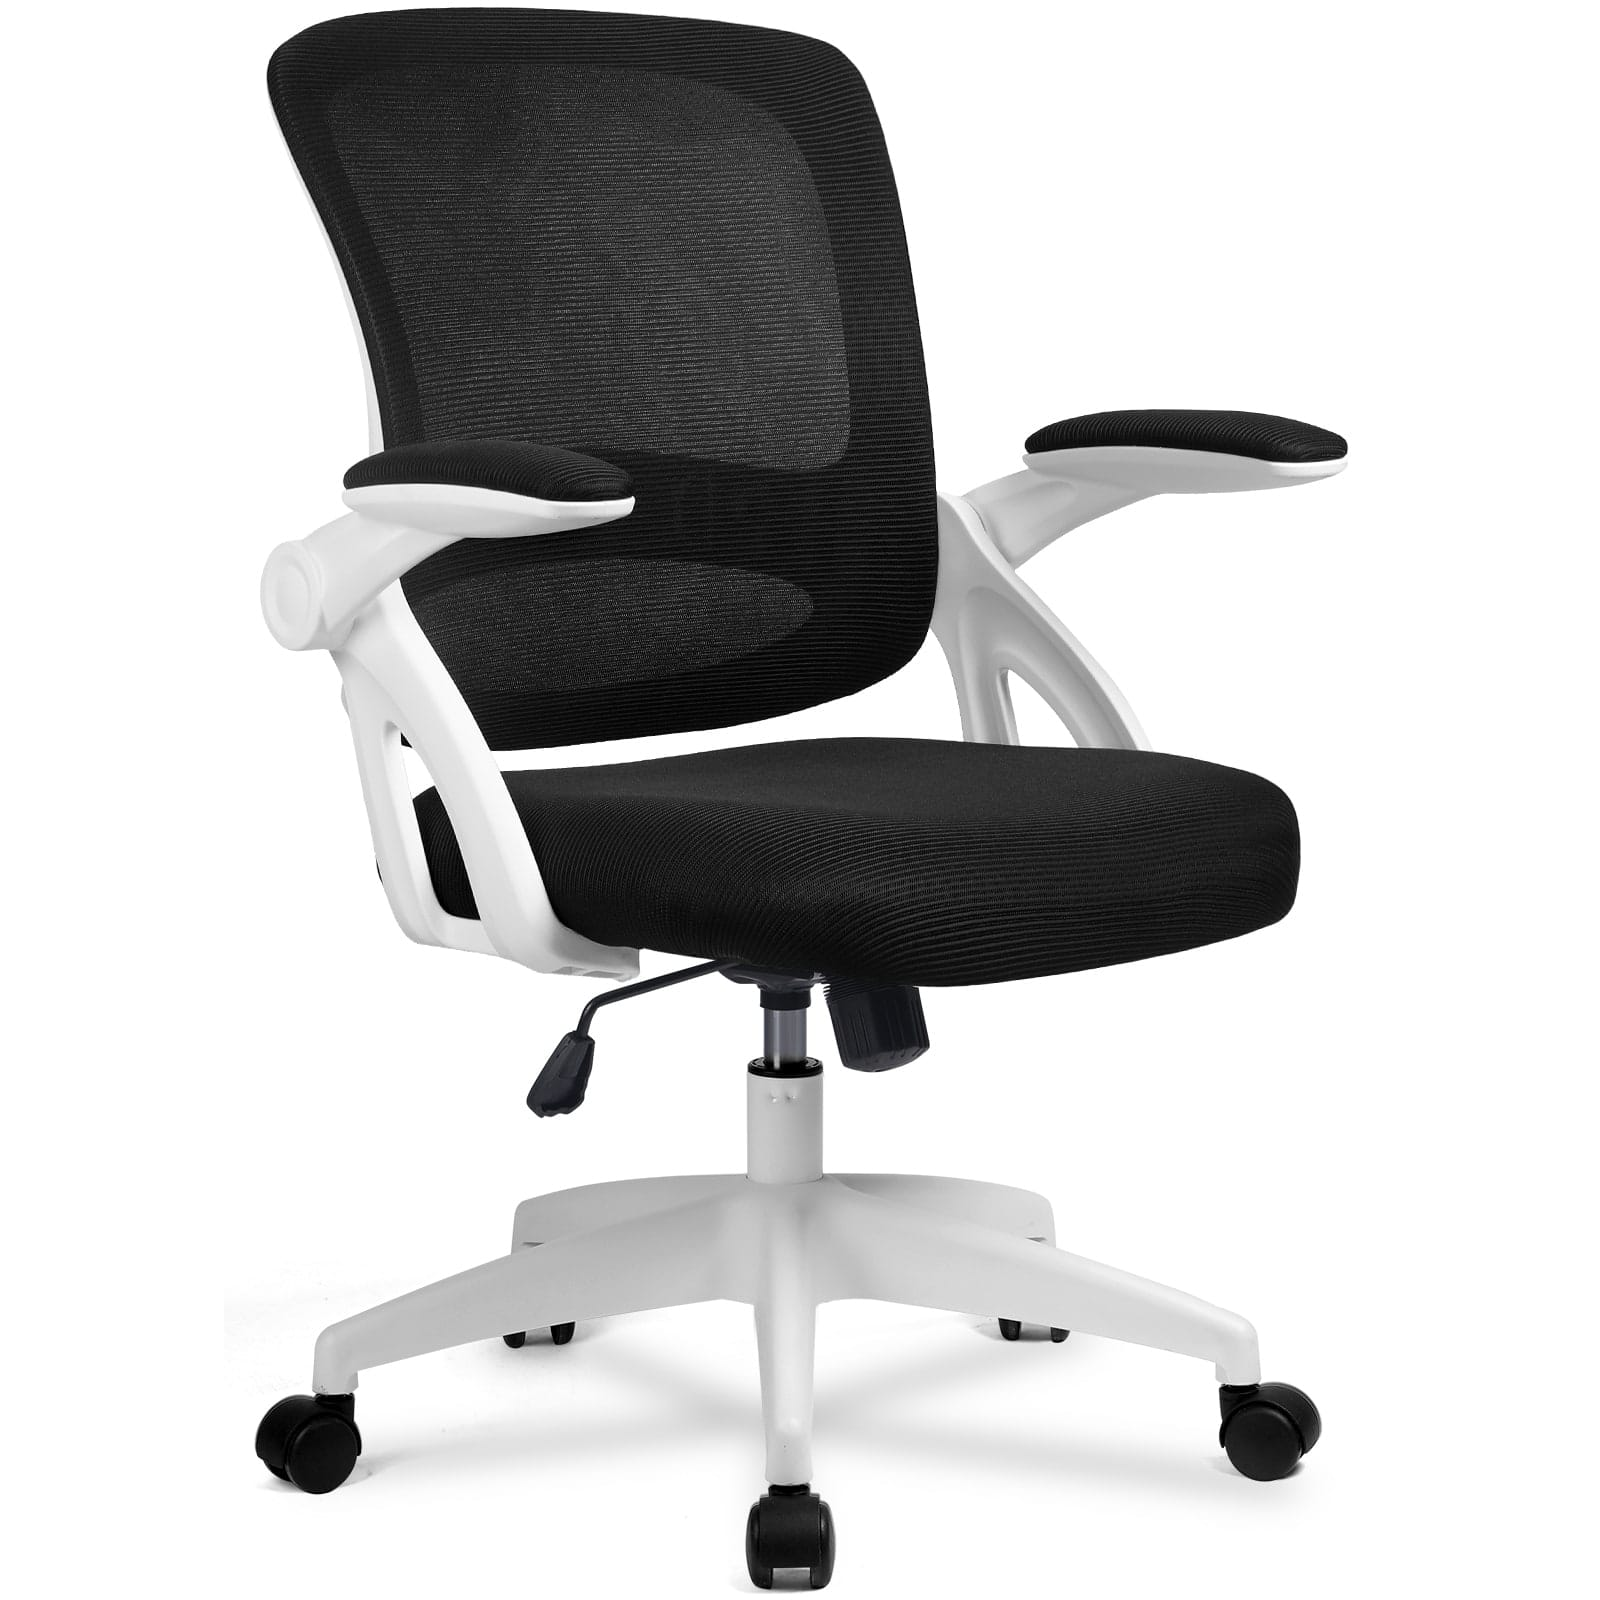 ComHoma Mesh Ergonomic Office Desk Chair with Flip Up Armrests, Lumbar Support $60.49 + Free Shipping